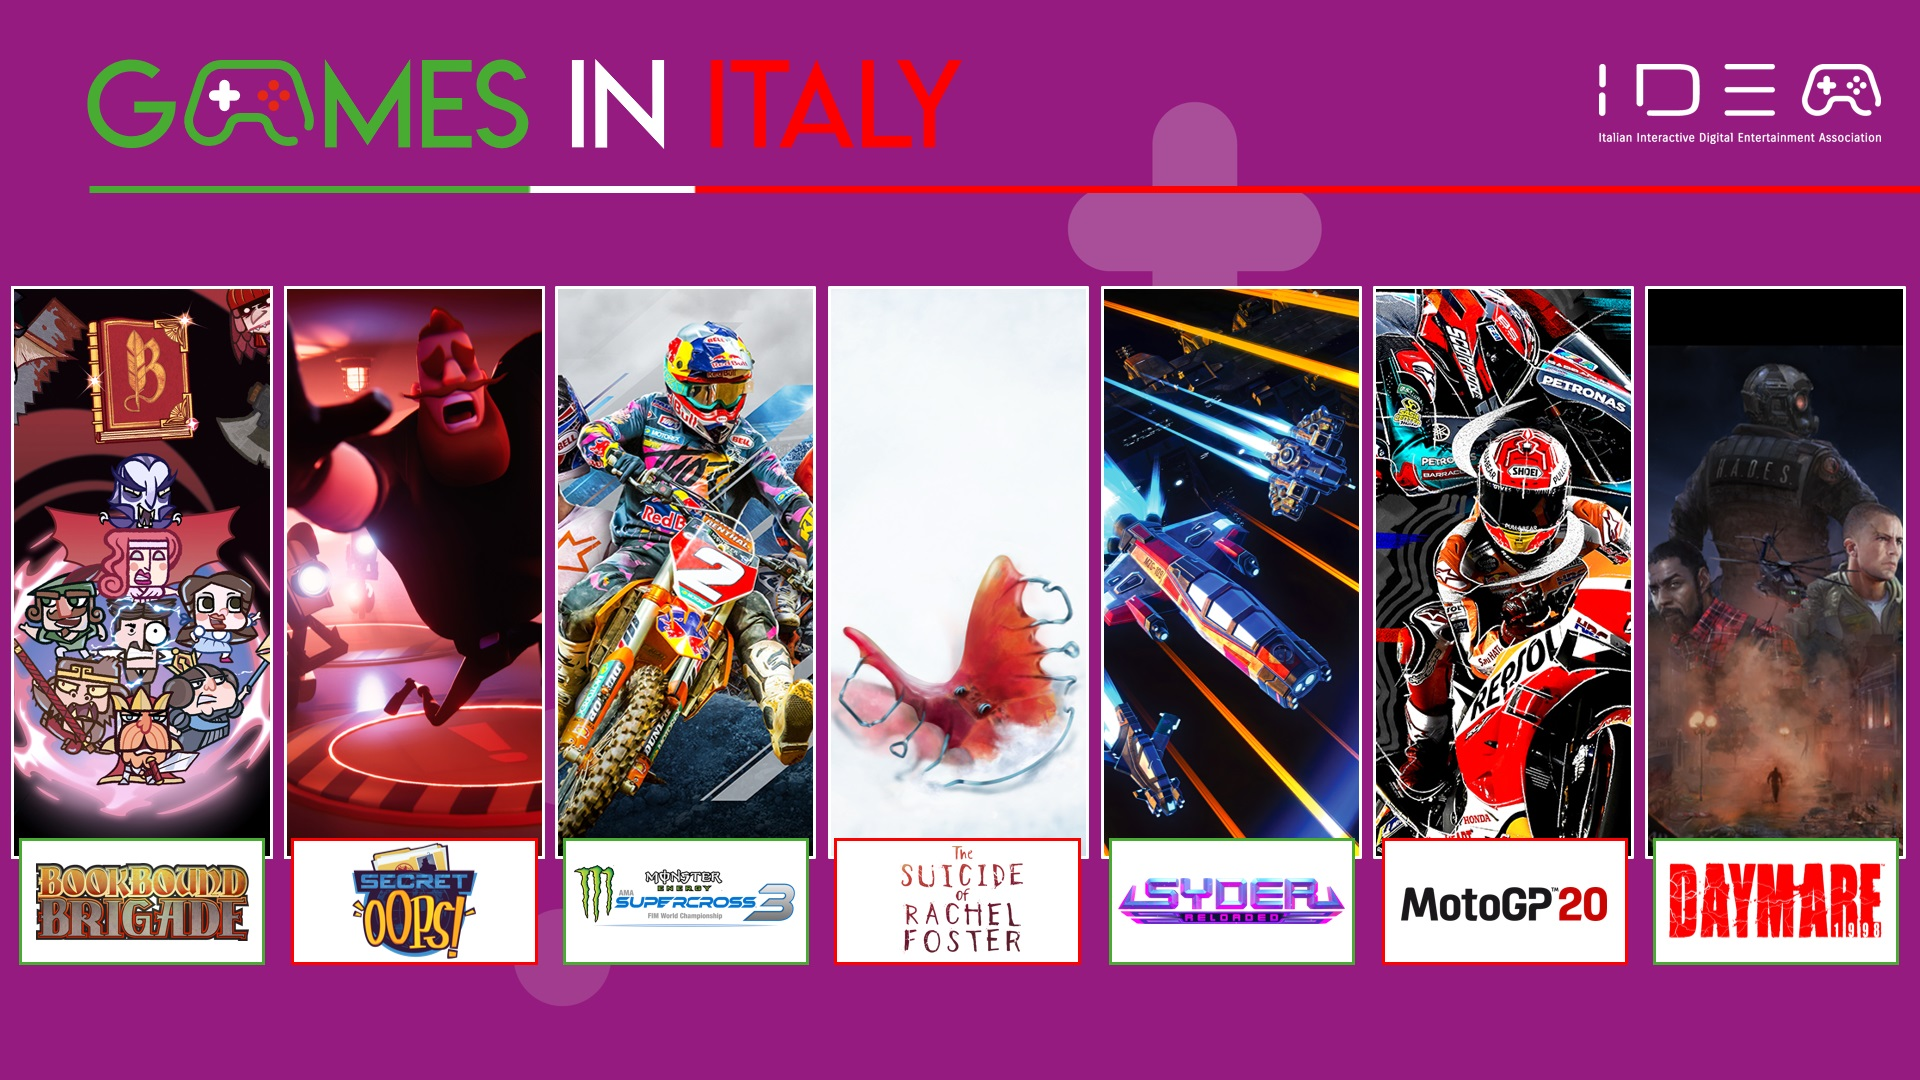 IIDEA lancia Games in Italy Outlook, per scoprire i giochi Made in Italy thumbnail